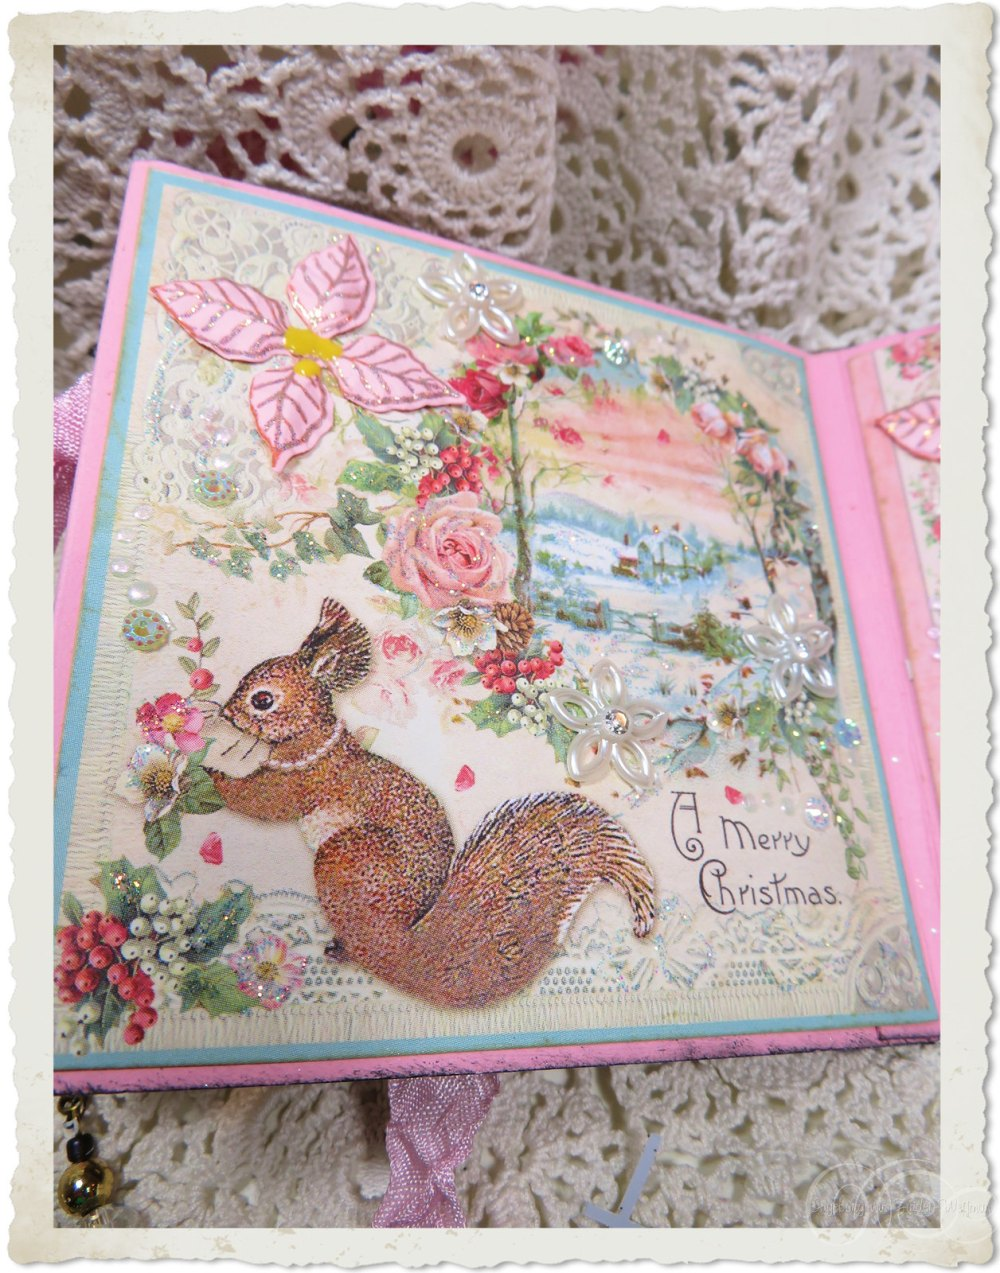 Pastel flowers and Christmas squirrel